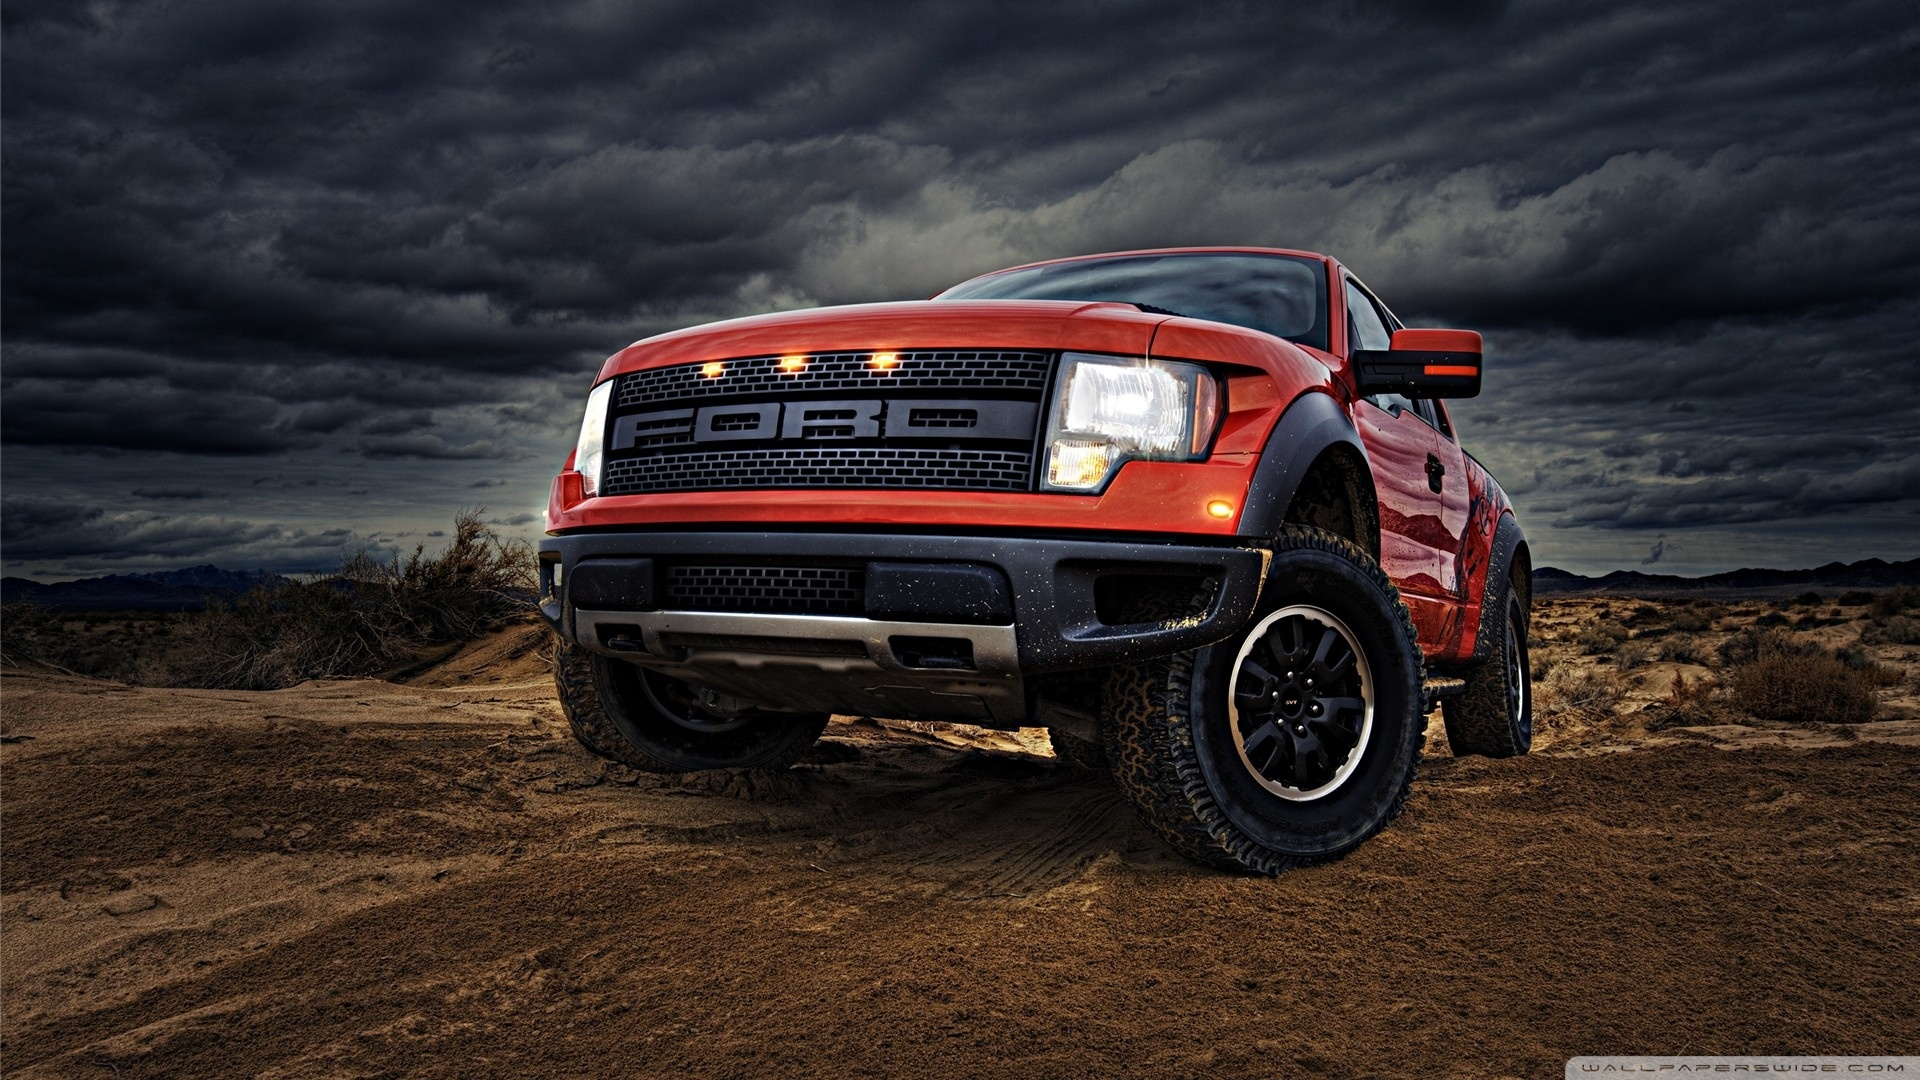 Ford F 150 Raptor Wallpaper 1920x1080 Ford F 150 Raptor 1920x1080